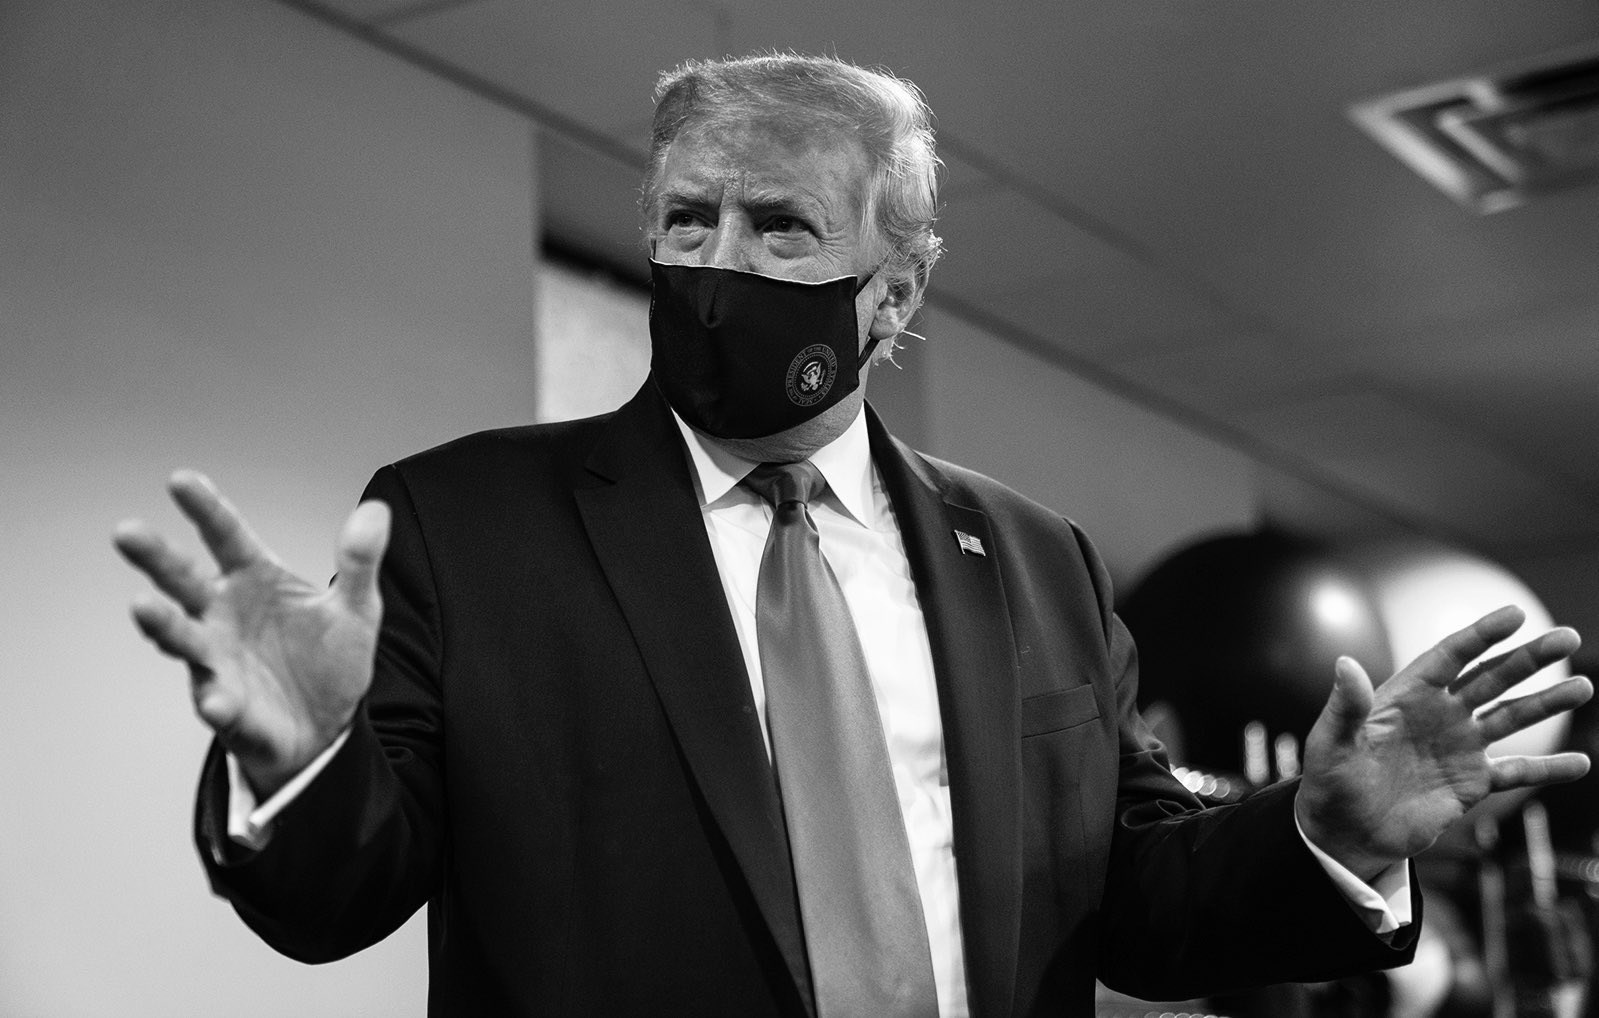 American President Donald Trump. [PHOTO CREDIT: Official Facebook Page of Trump]